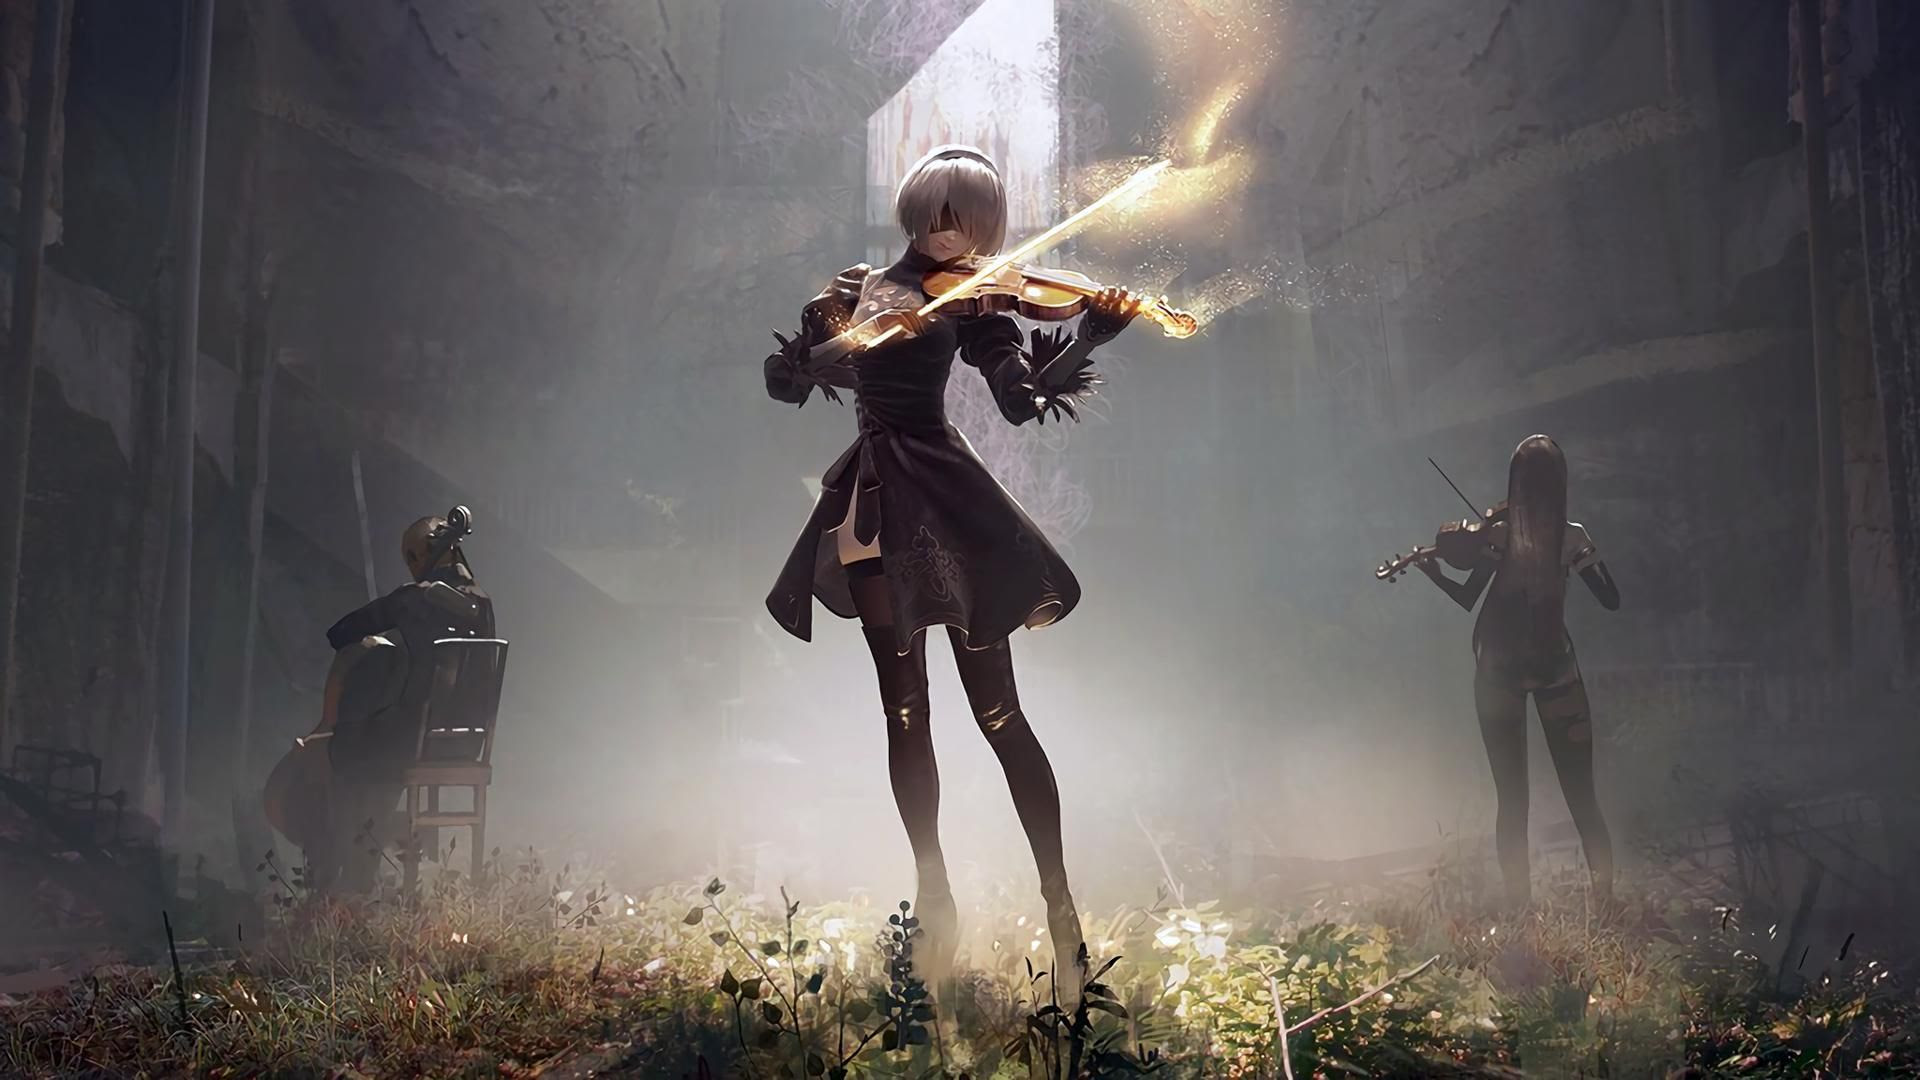 Nier Automata Wallpapers Trumpwallpapers